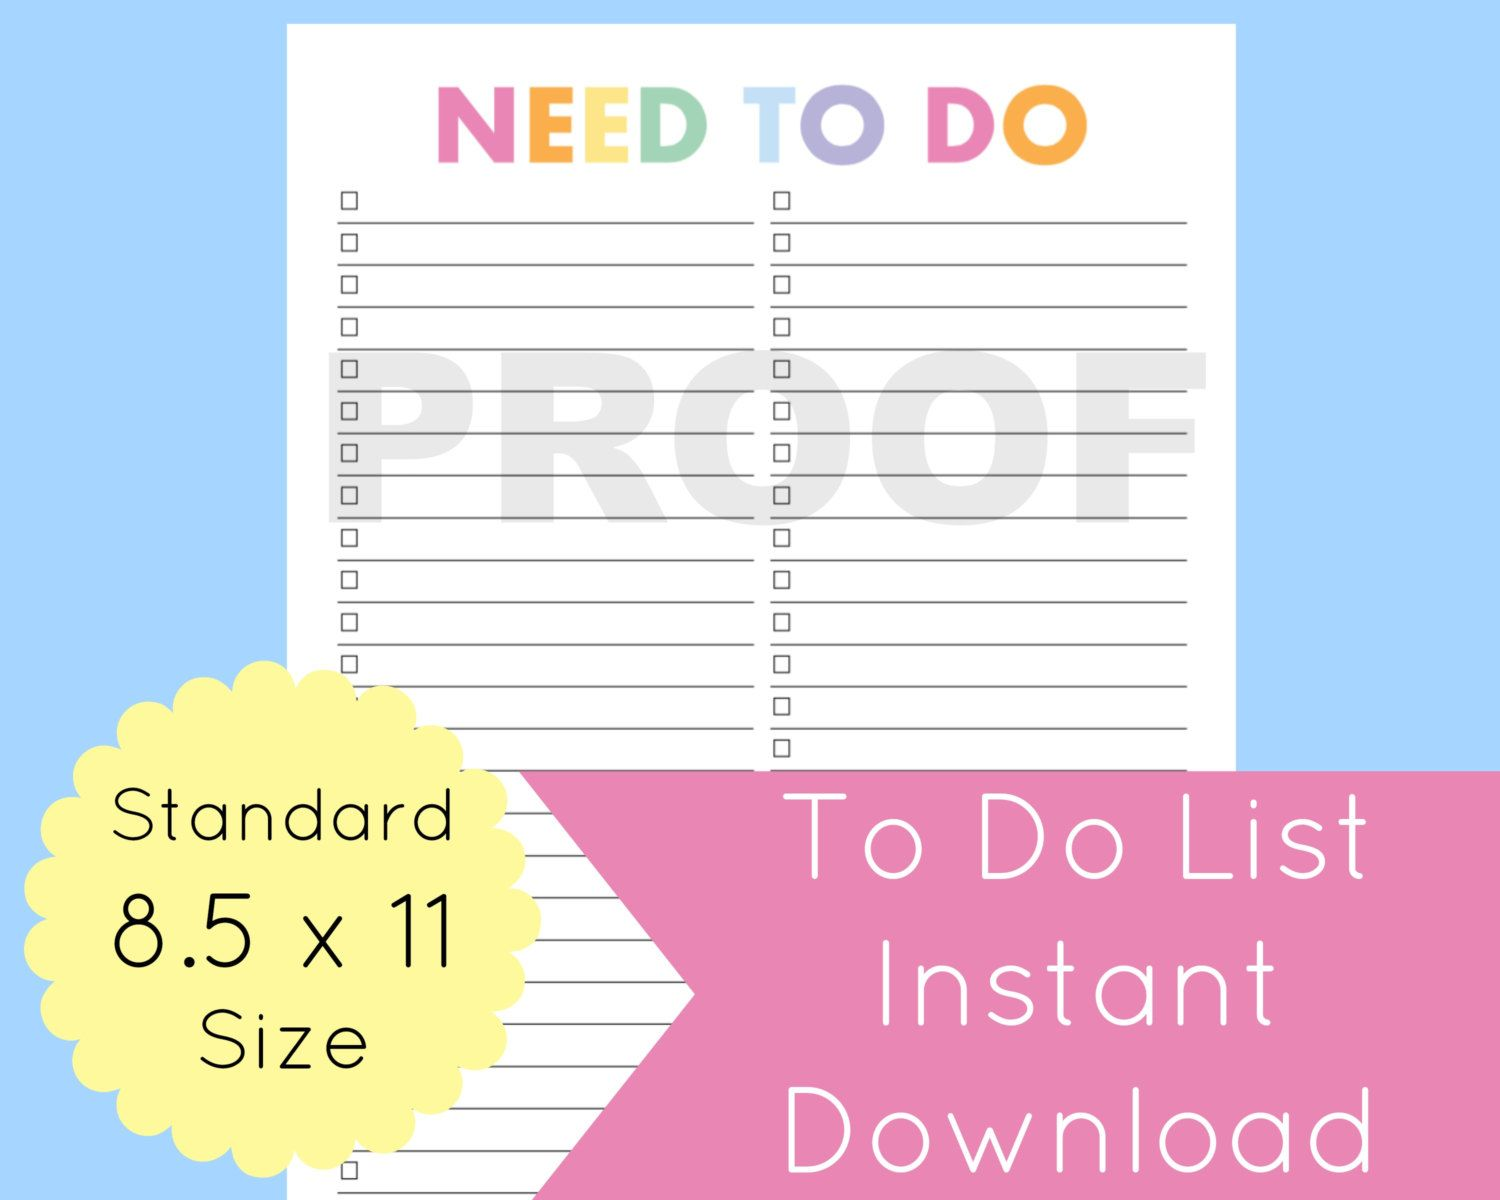 New to CommandCenter on Etsy: To Do List Printable To Do List Planner Printable To Do List Printable Planner Pages Daily To Do List 8.5 x 11 Planner Planner Pages (1.99 USD)